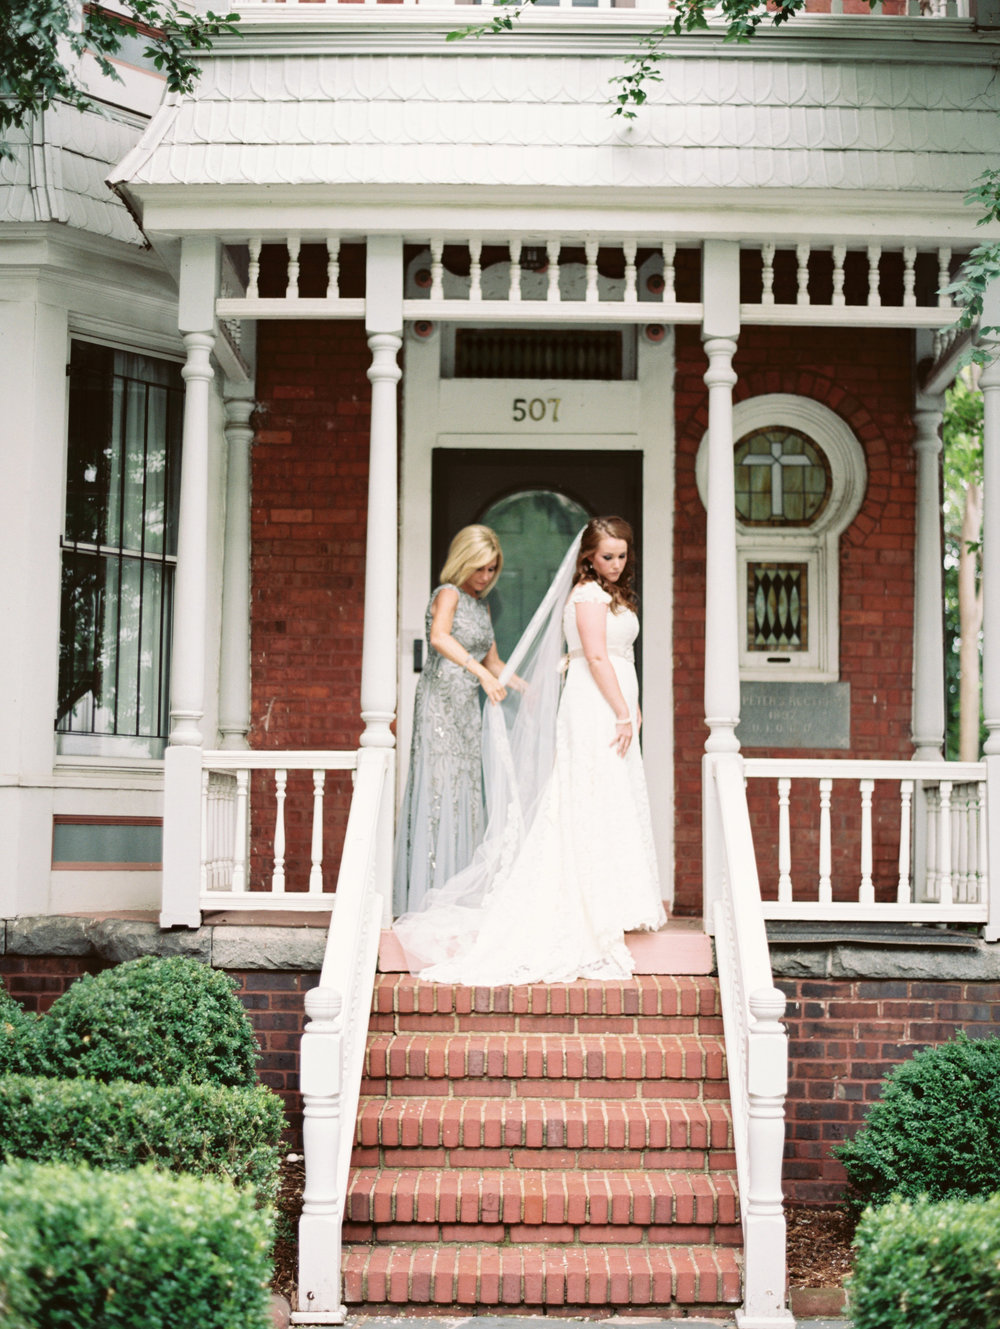 View More: http://laurenrosenauphoto.pass.us/kateandphillip